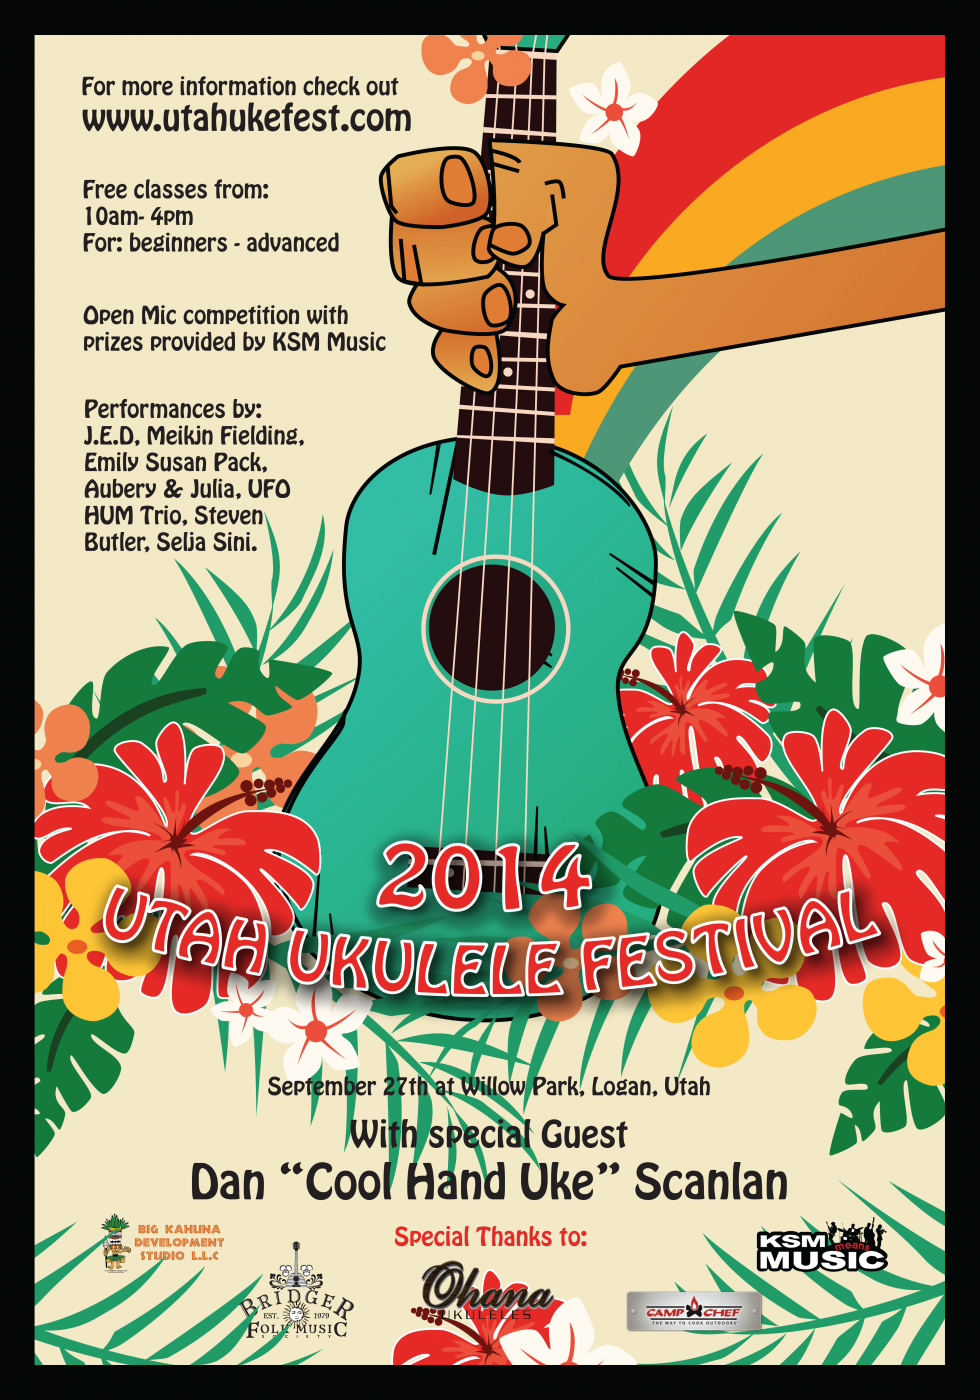 Poster for the Utah Ukulele Festival 2014